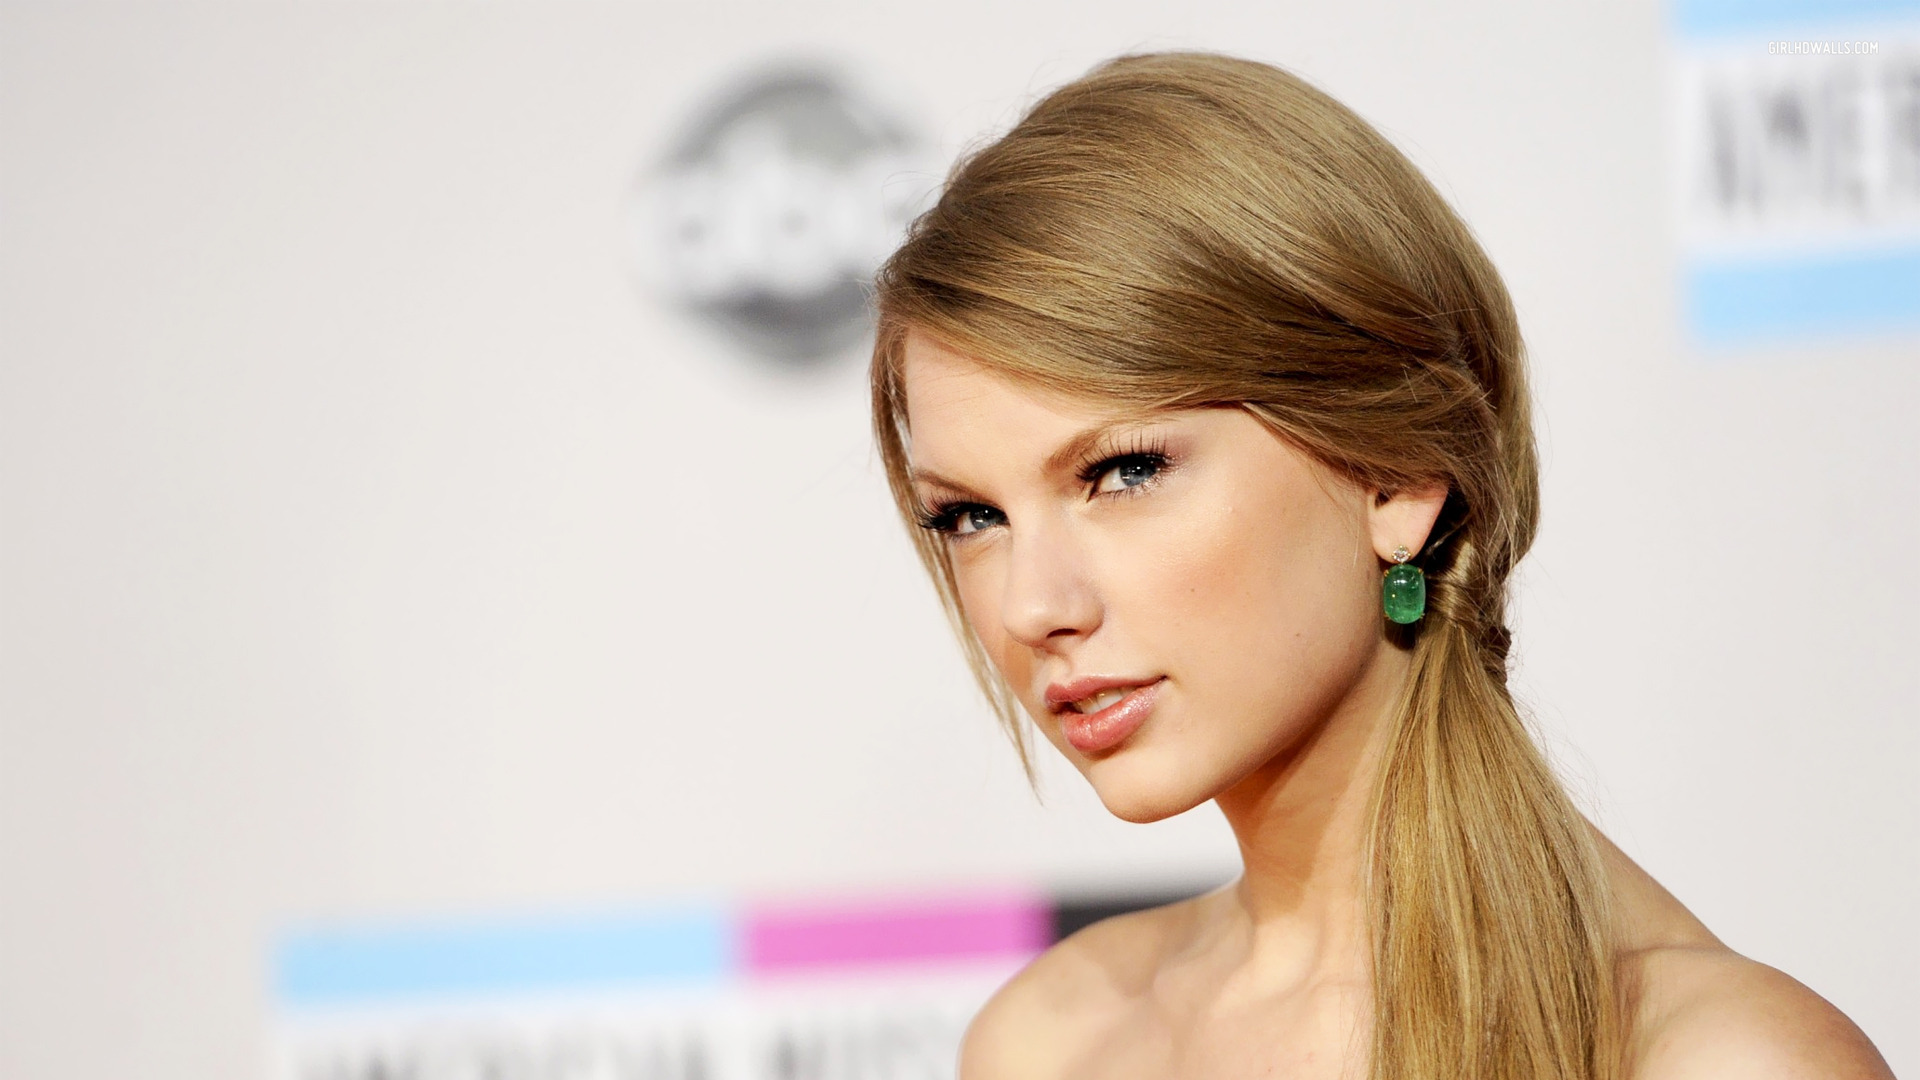 taylor swift cute smile look download hd free background computer pictures